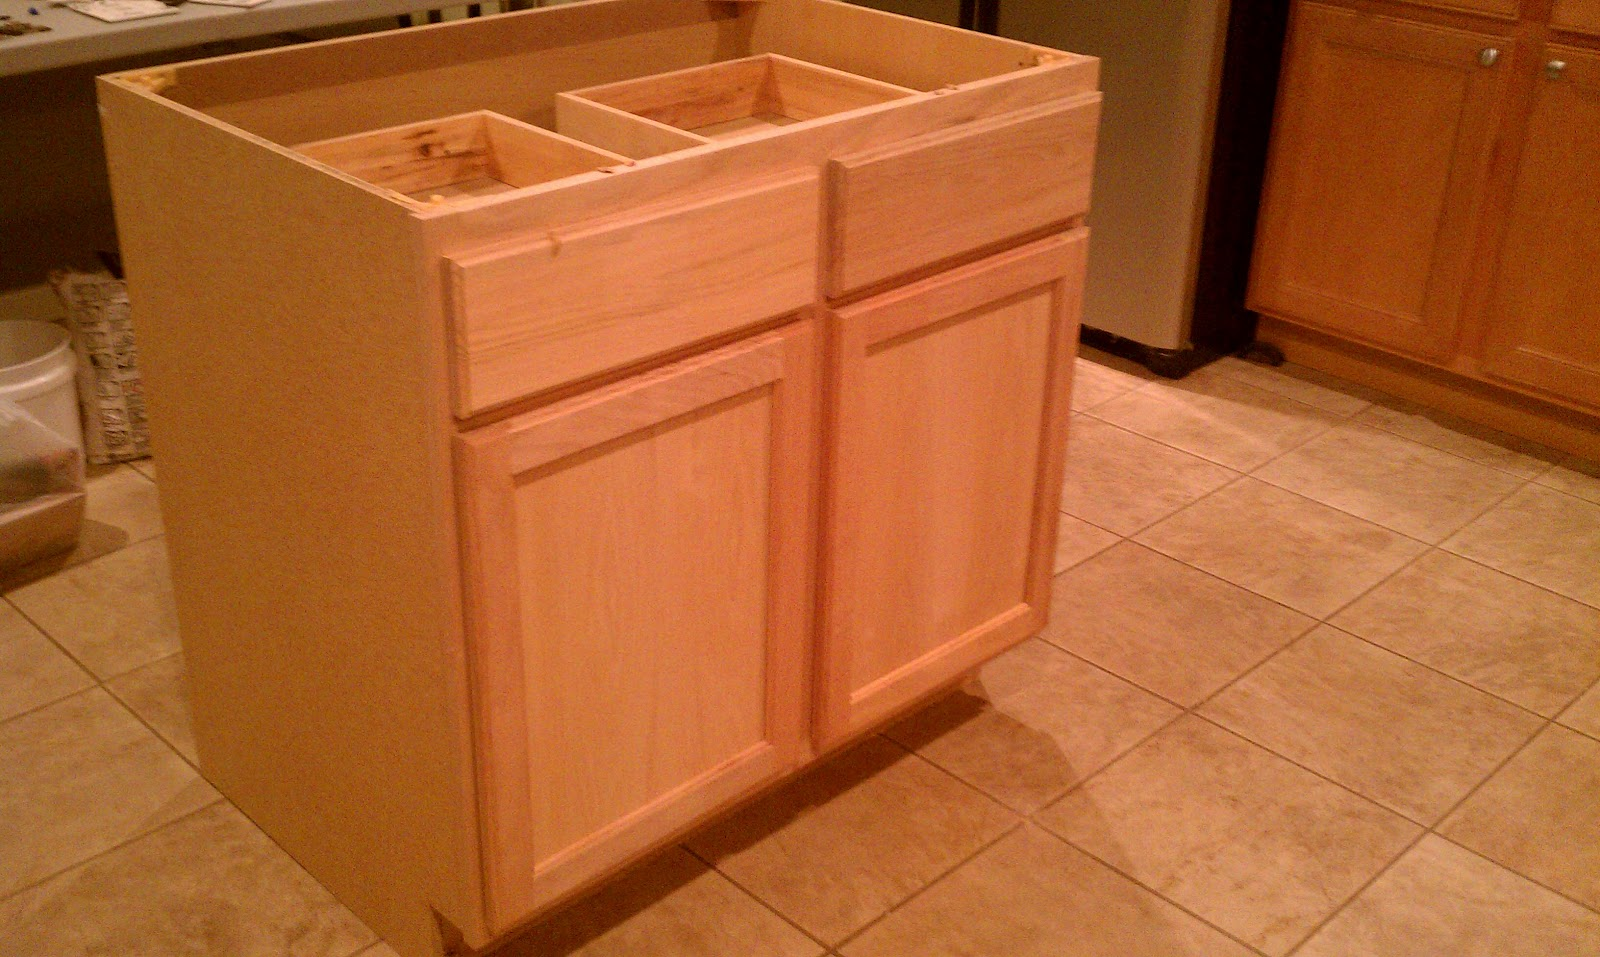 building a kitchen island using cabinets weeknd project low budget kitchen renovation welcome to